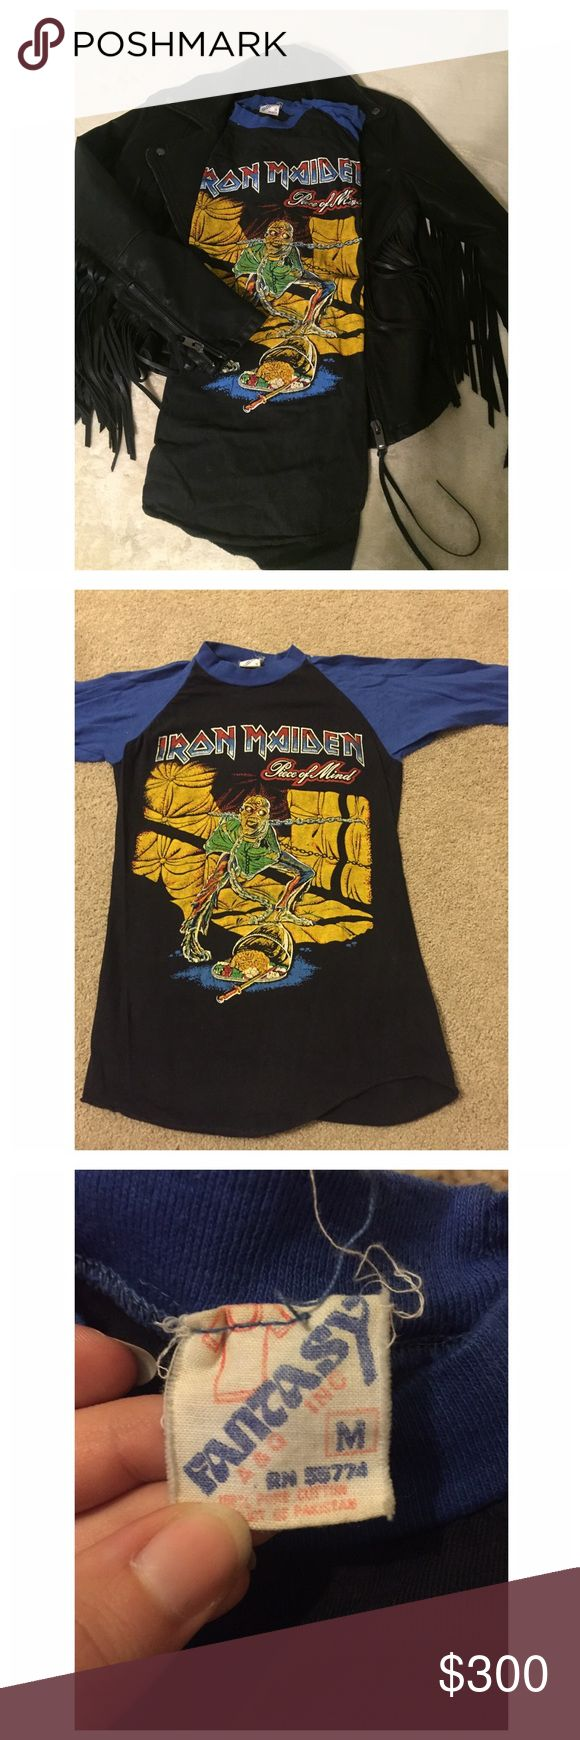 iron maiden tee all band tees are true vintage. my dad had either purchased at concerts he attended or was given them for working at the concerts themselves. all are in excellent vintage condition with the exception of a few that were truly loved. you have any questions please leave a comment.   all items are cheaper if bundled.  no trades and i will not try on.  thanks and happy shopping. Vintage Tops Tees - Long Sleeve